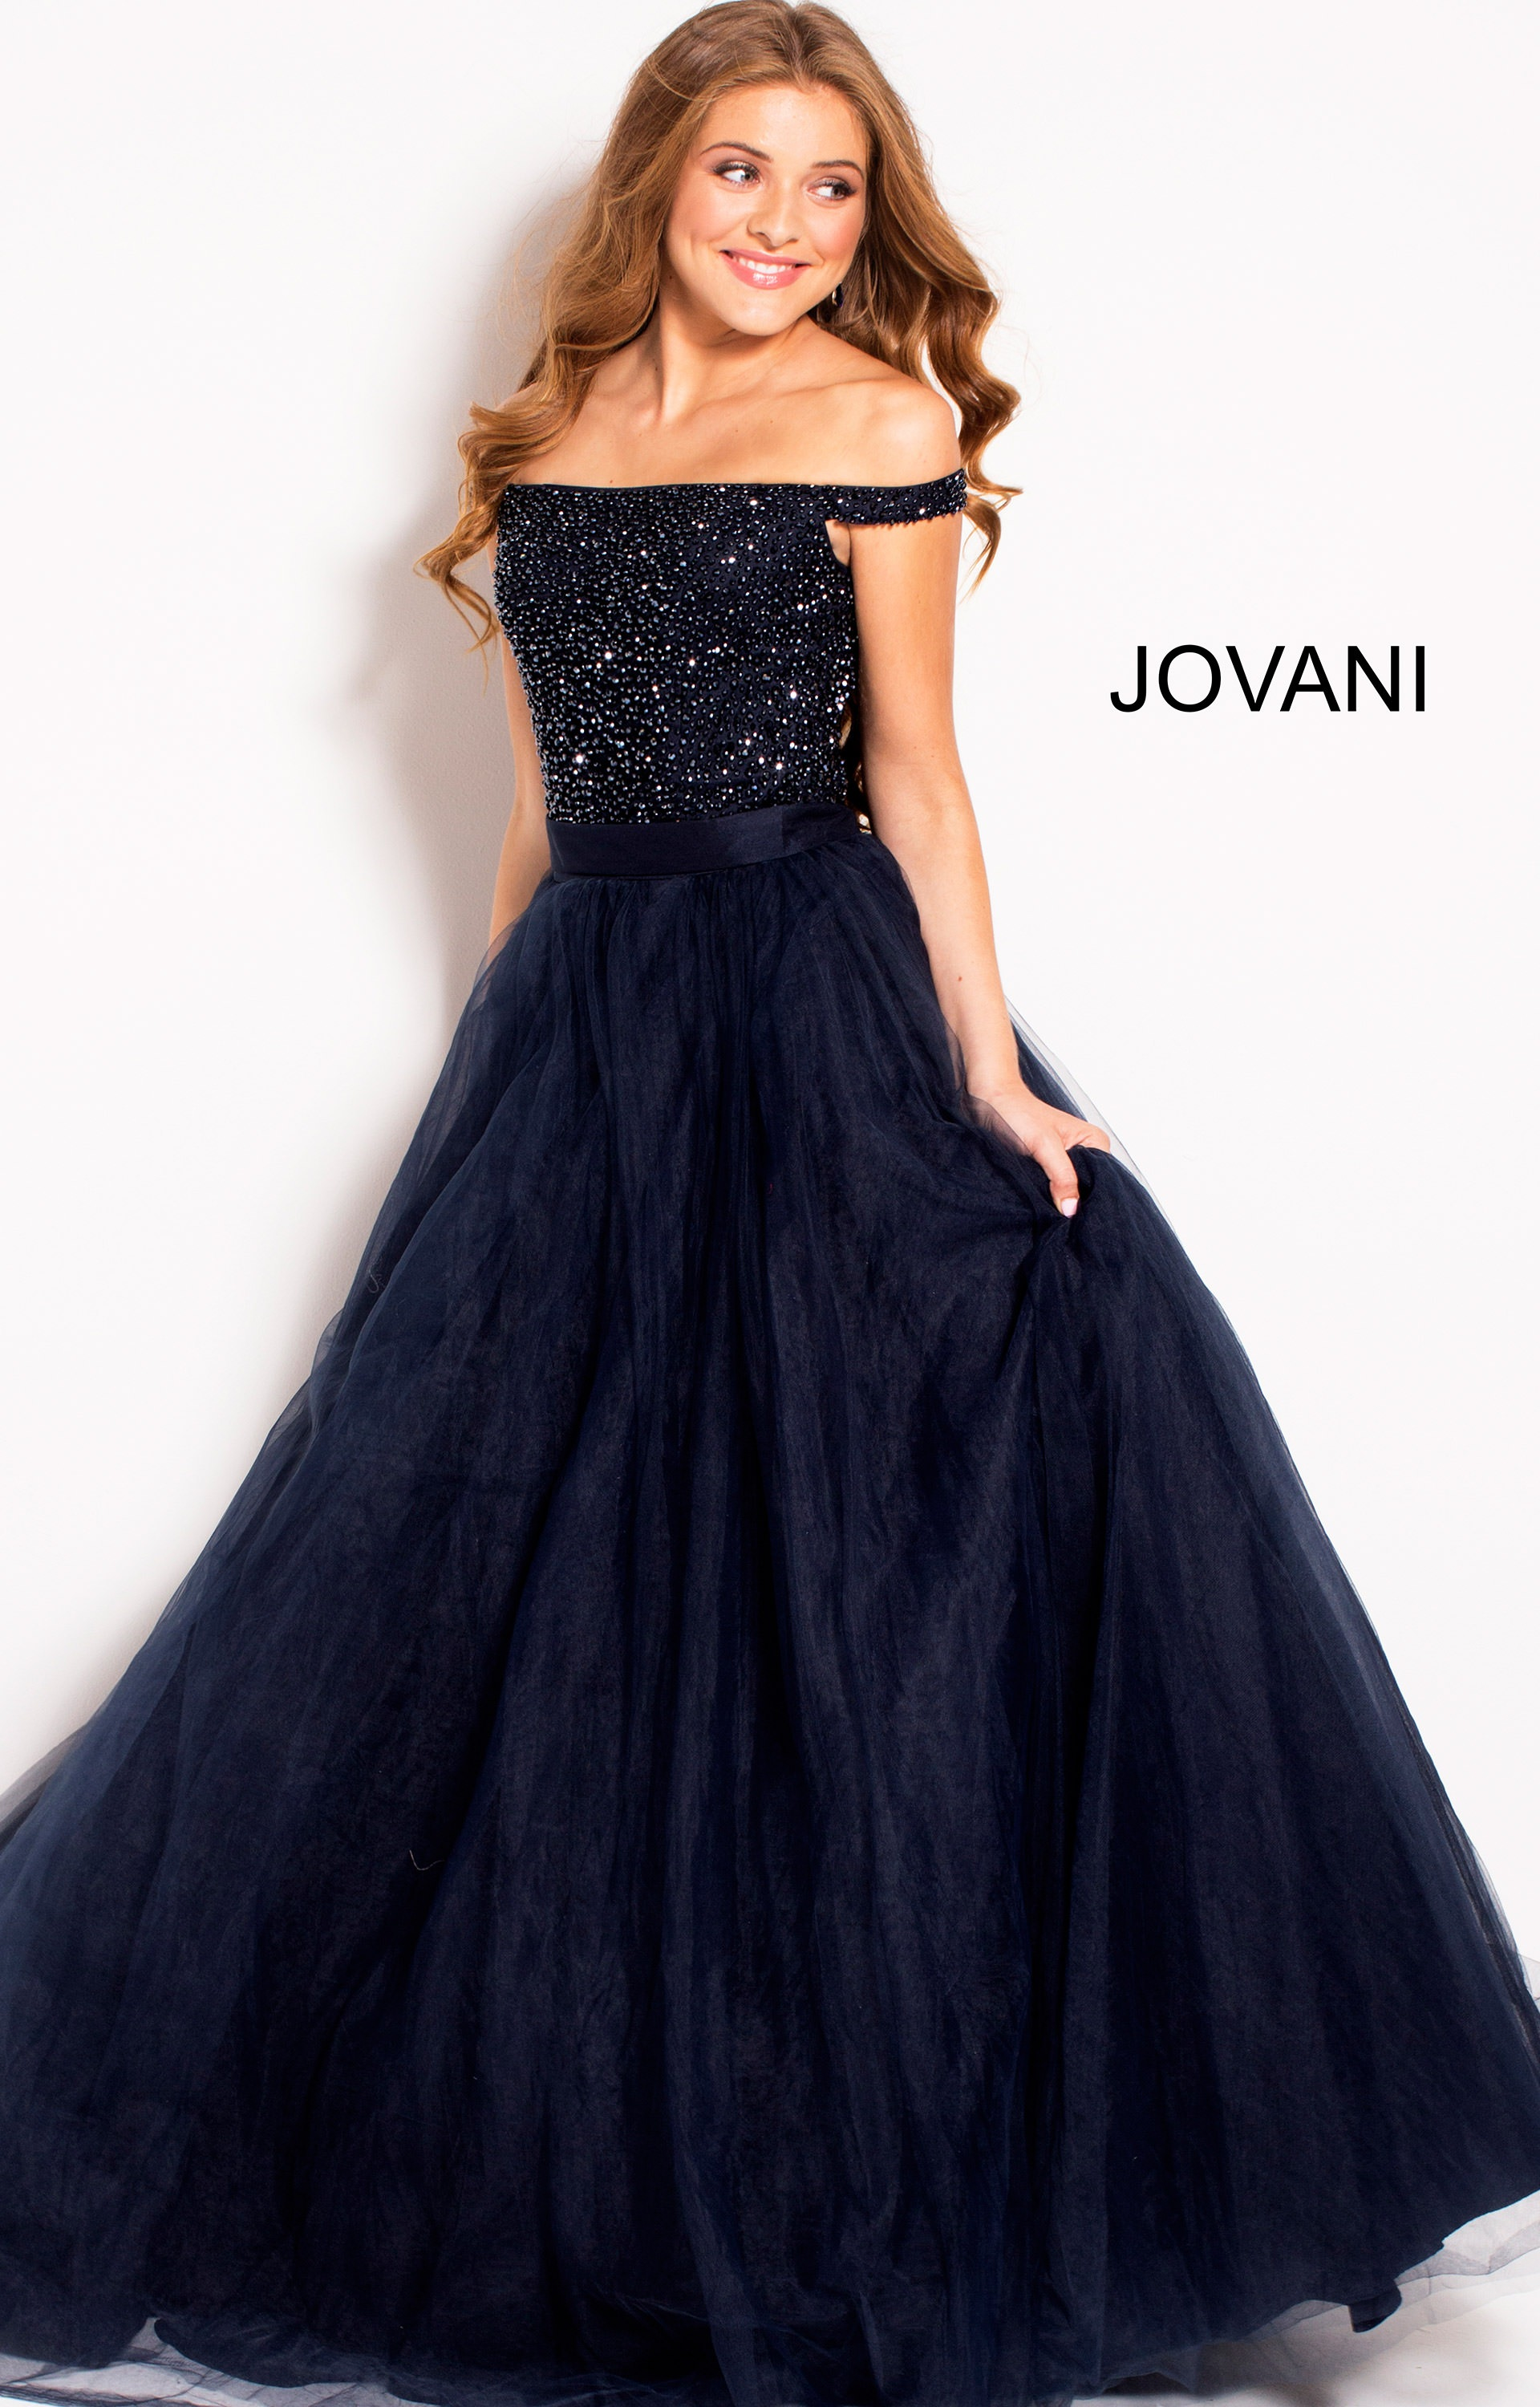 Jovani 50616 - Off the Shoulder Ball Gown Prom Dress